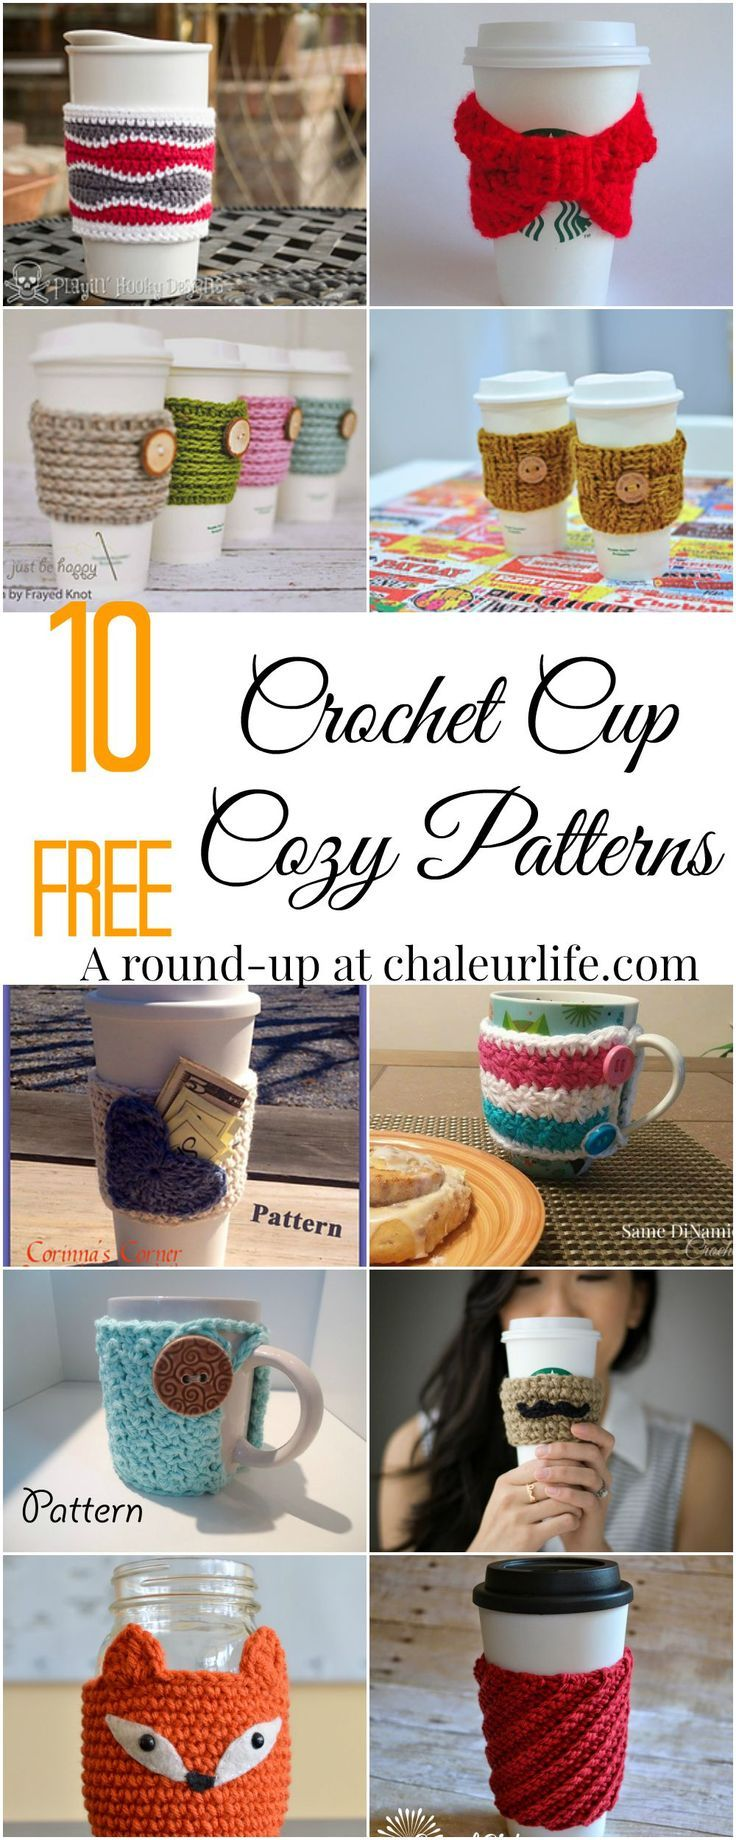 15+ best ideas about Crochet Cozy on Pinterest Coffee ...